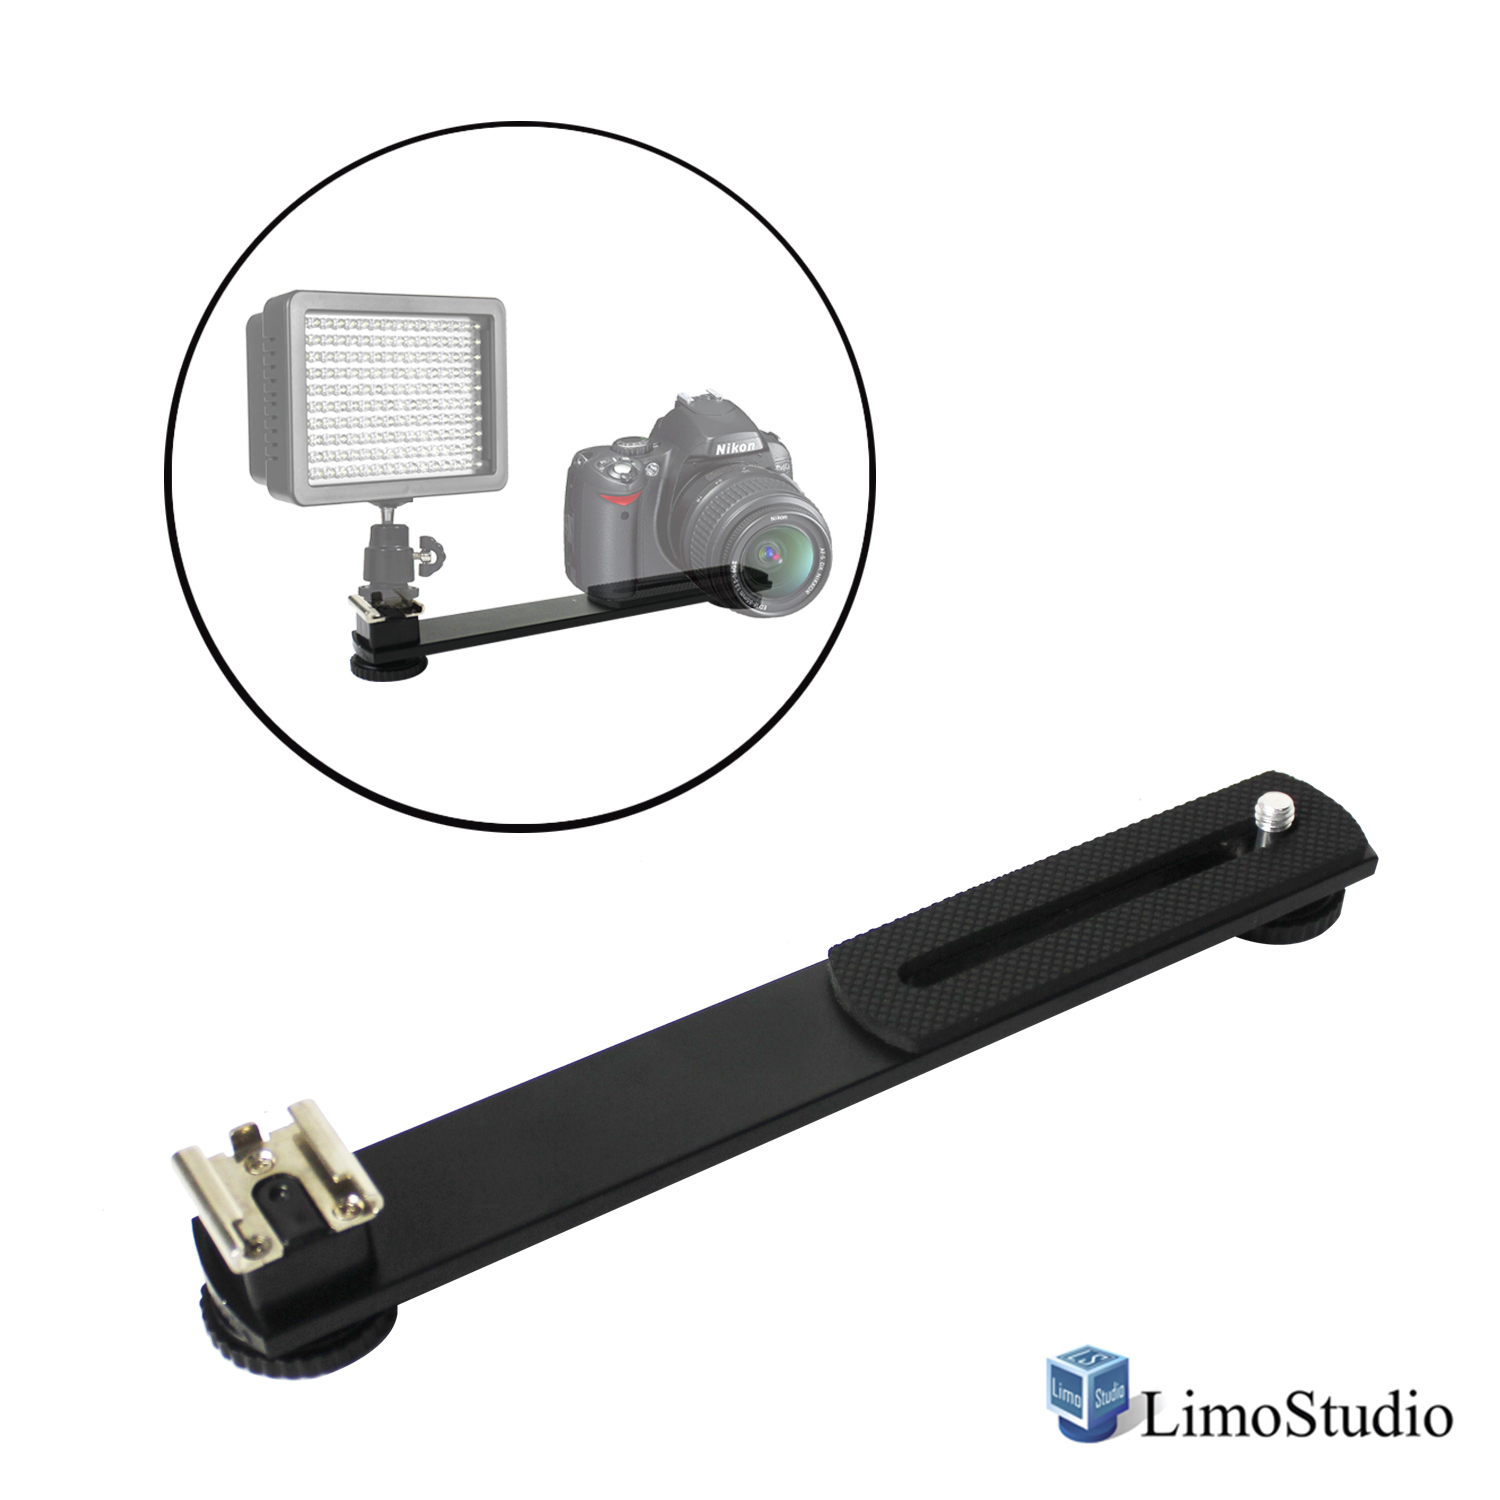 "Loadstone Studio 7.5 inch Straight Camera Flash Bracket 1/4""-20 Screw Hot Shoe Mount for Video Lights, Microphone, Monitor and Camera Accessories, WMLS4474"